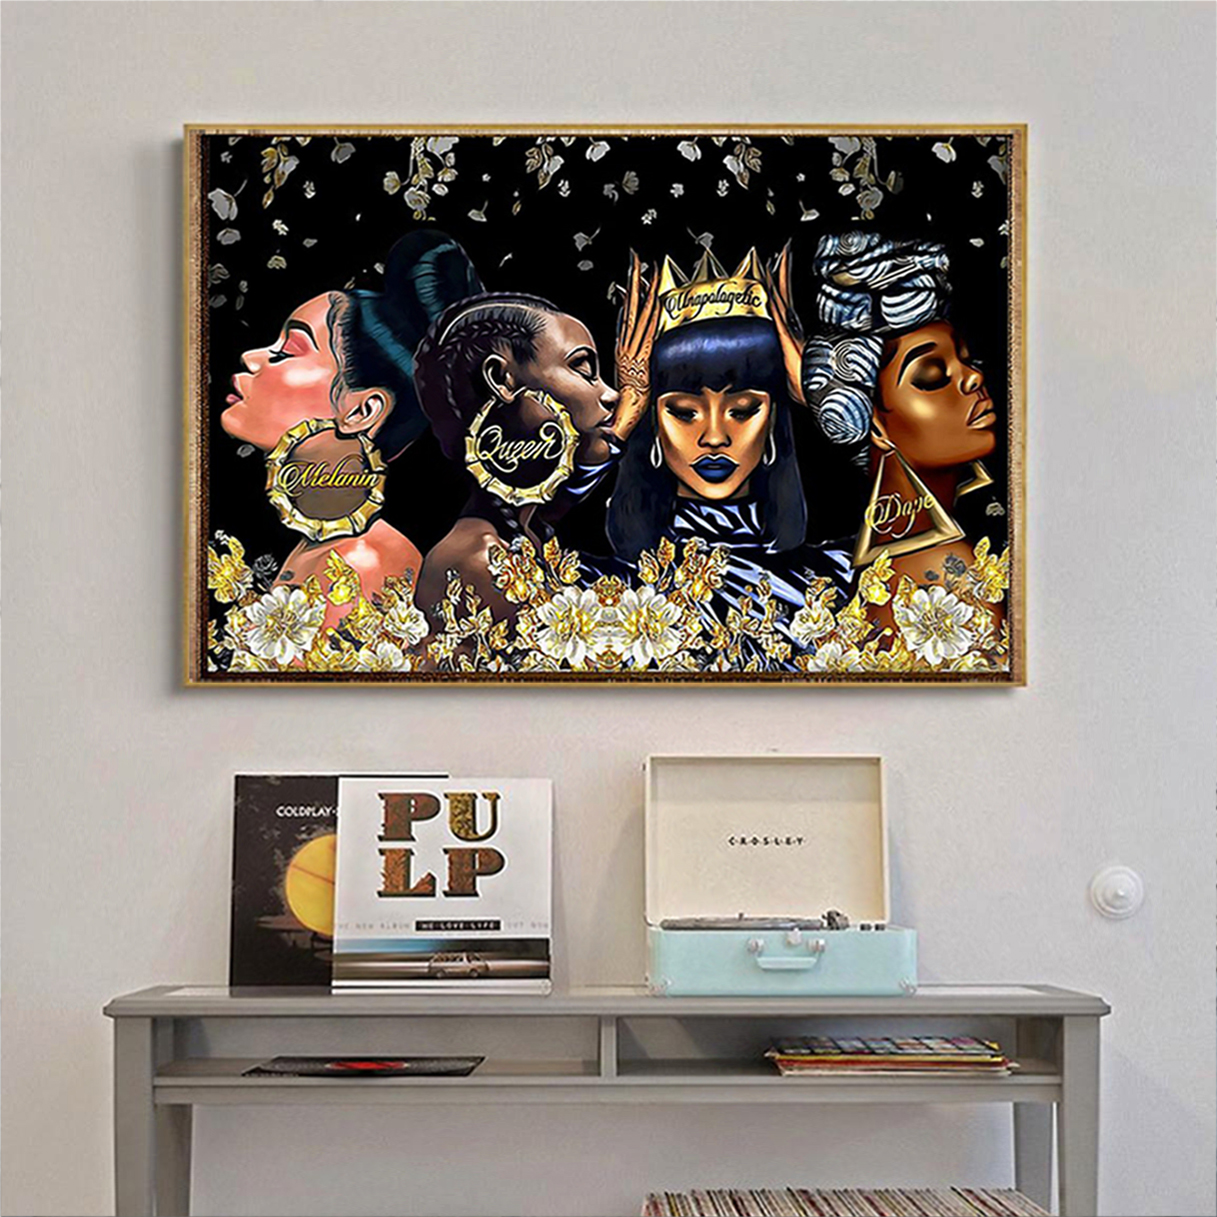 Black woman melanin queen unapologetic dope poster A2